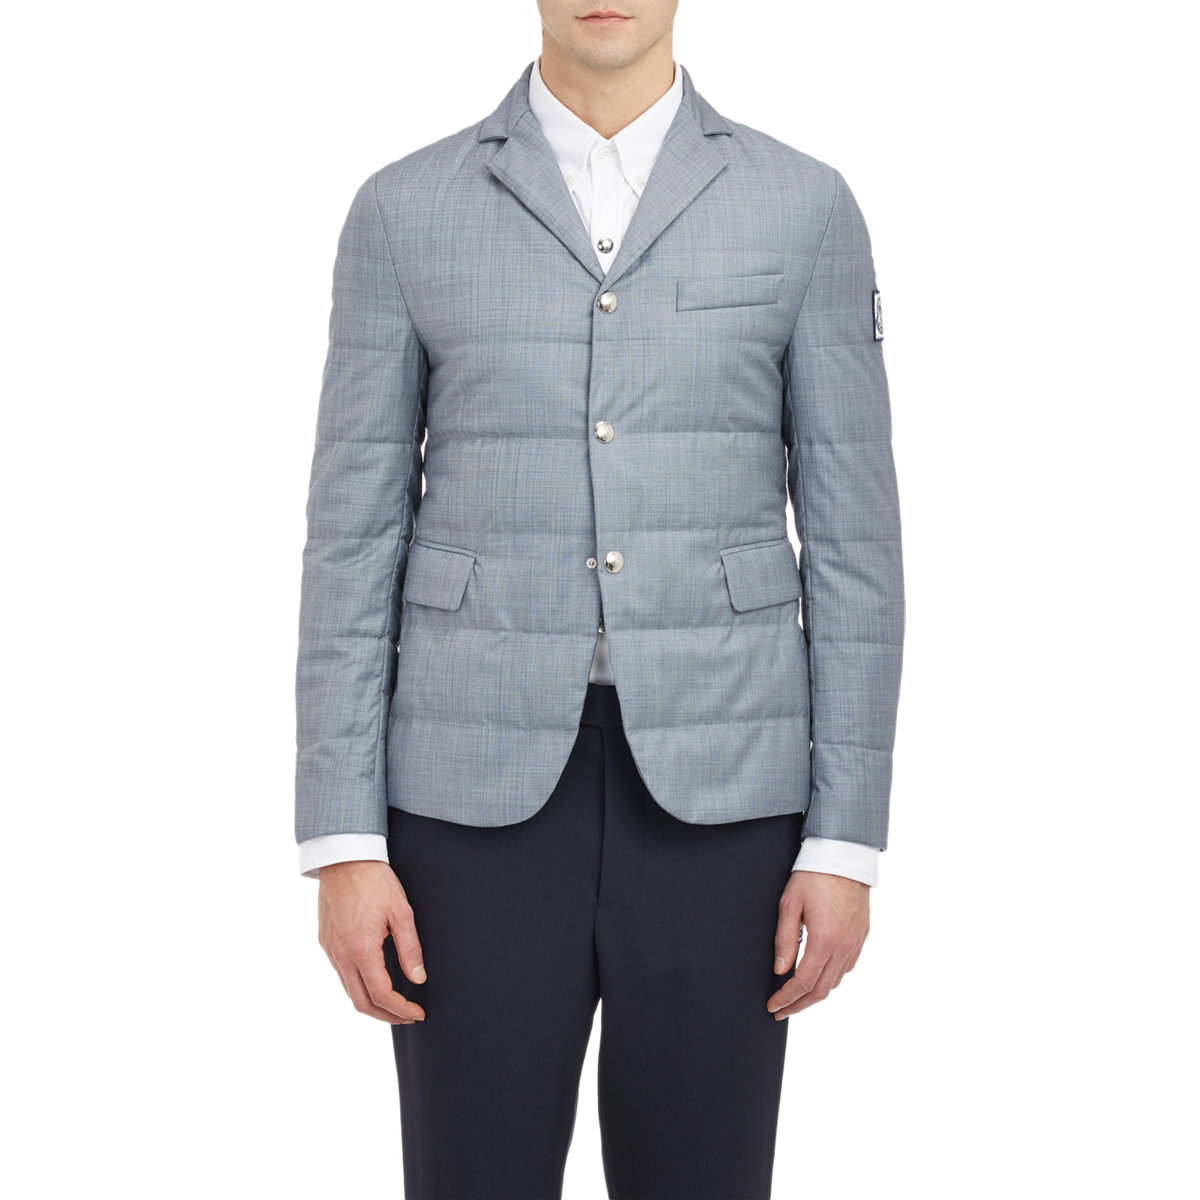 e5416bfef Lyst - Moncler Gamme Bleu Quilted Twill Jacket in Gray for Men